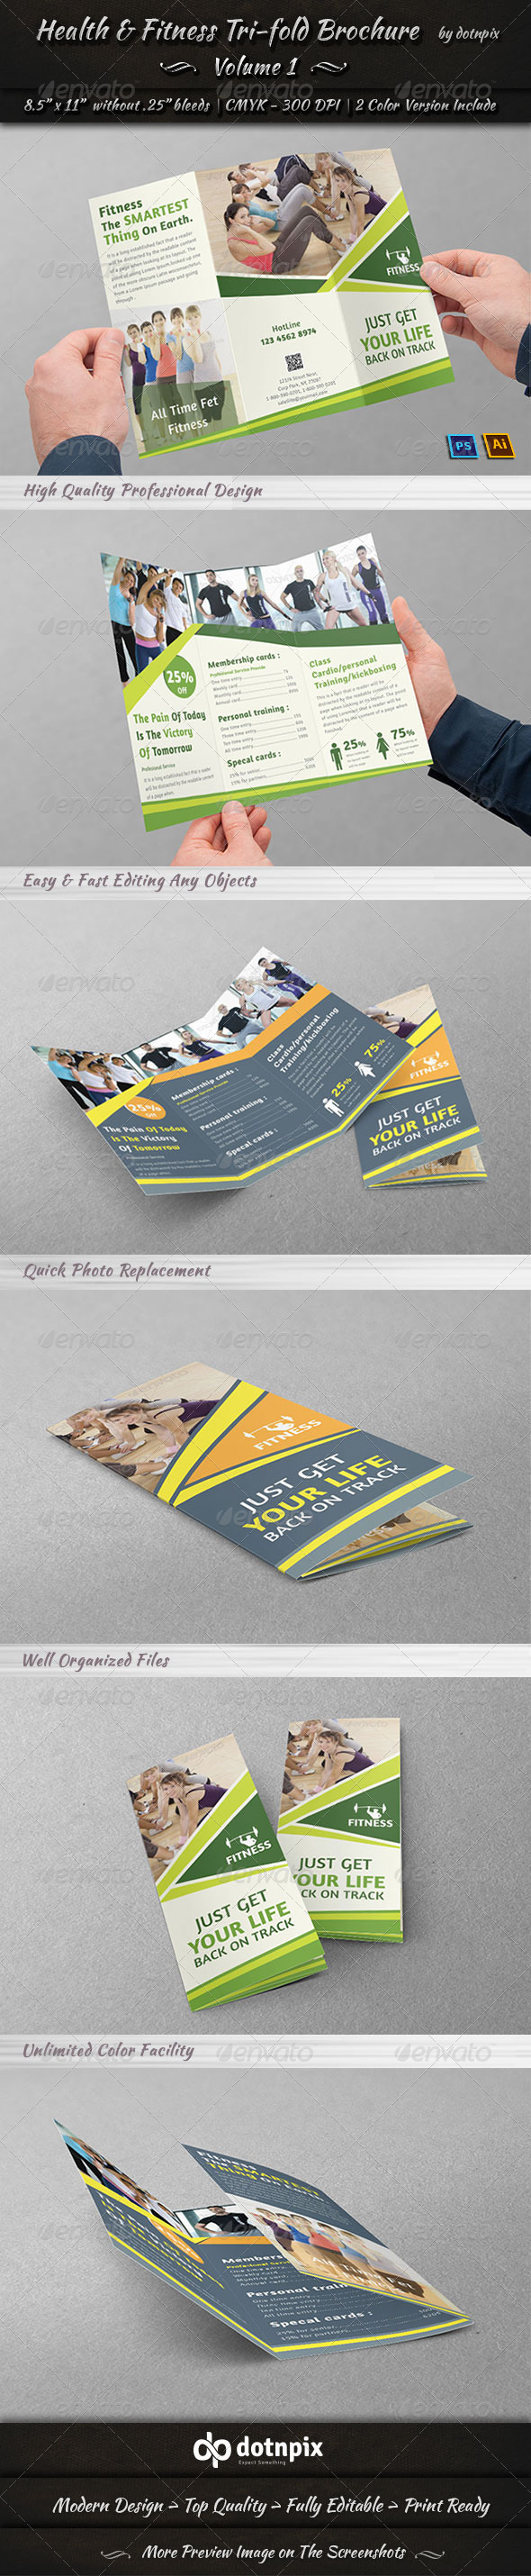 Health & Fitness Tri-Fold Brochure Volume 1